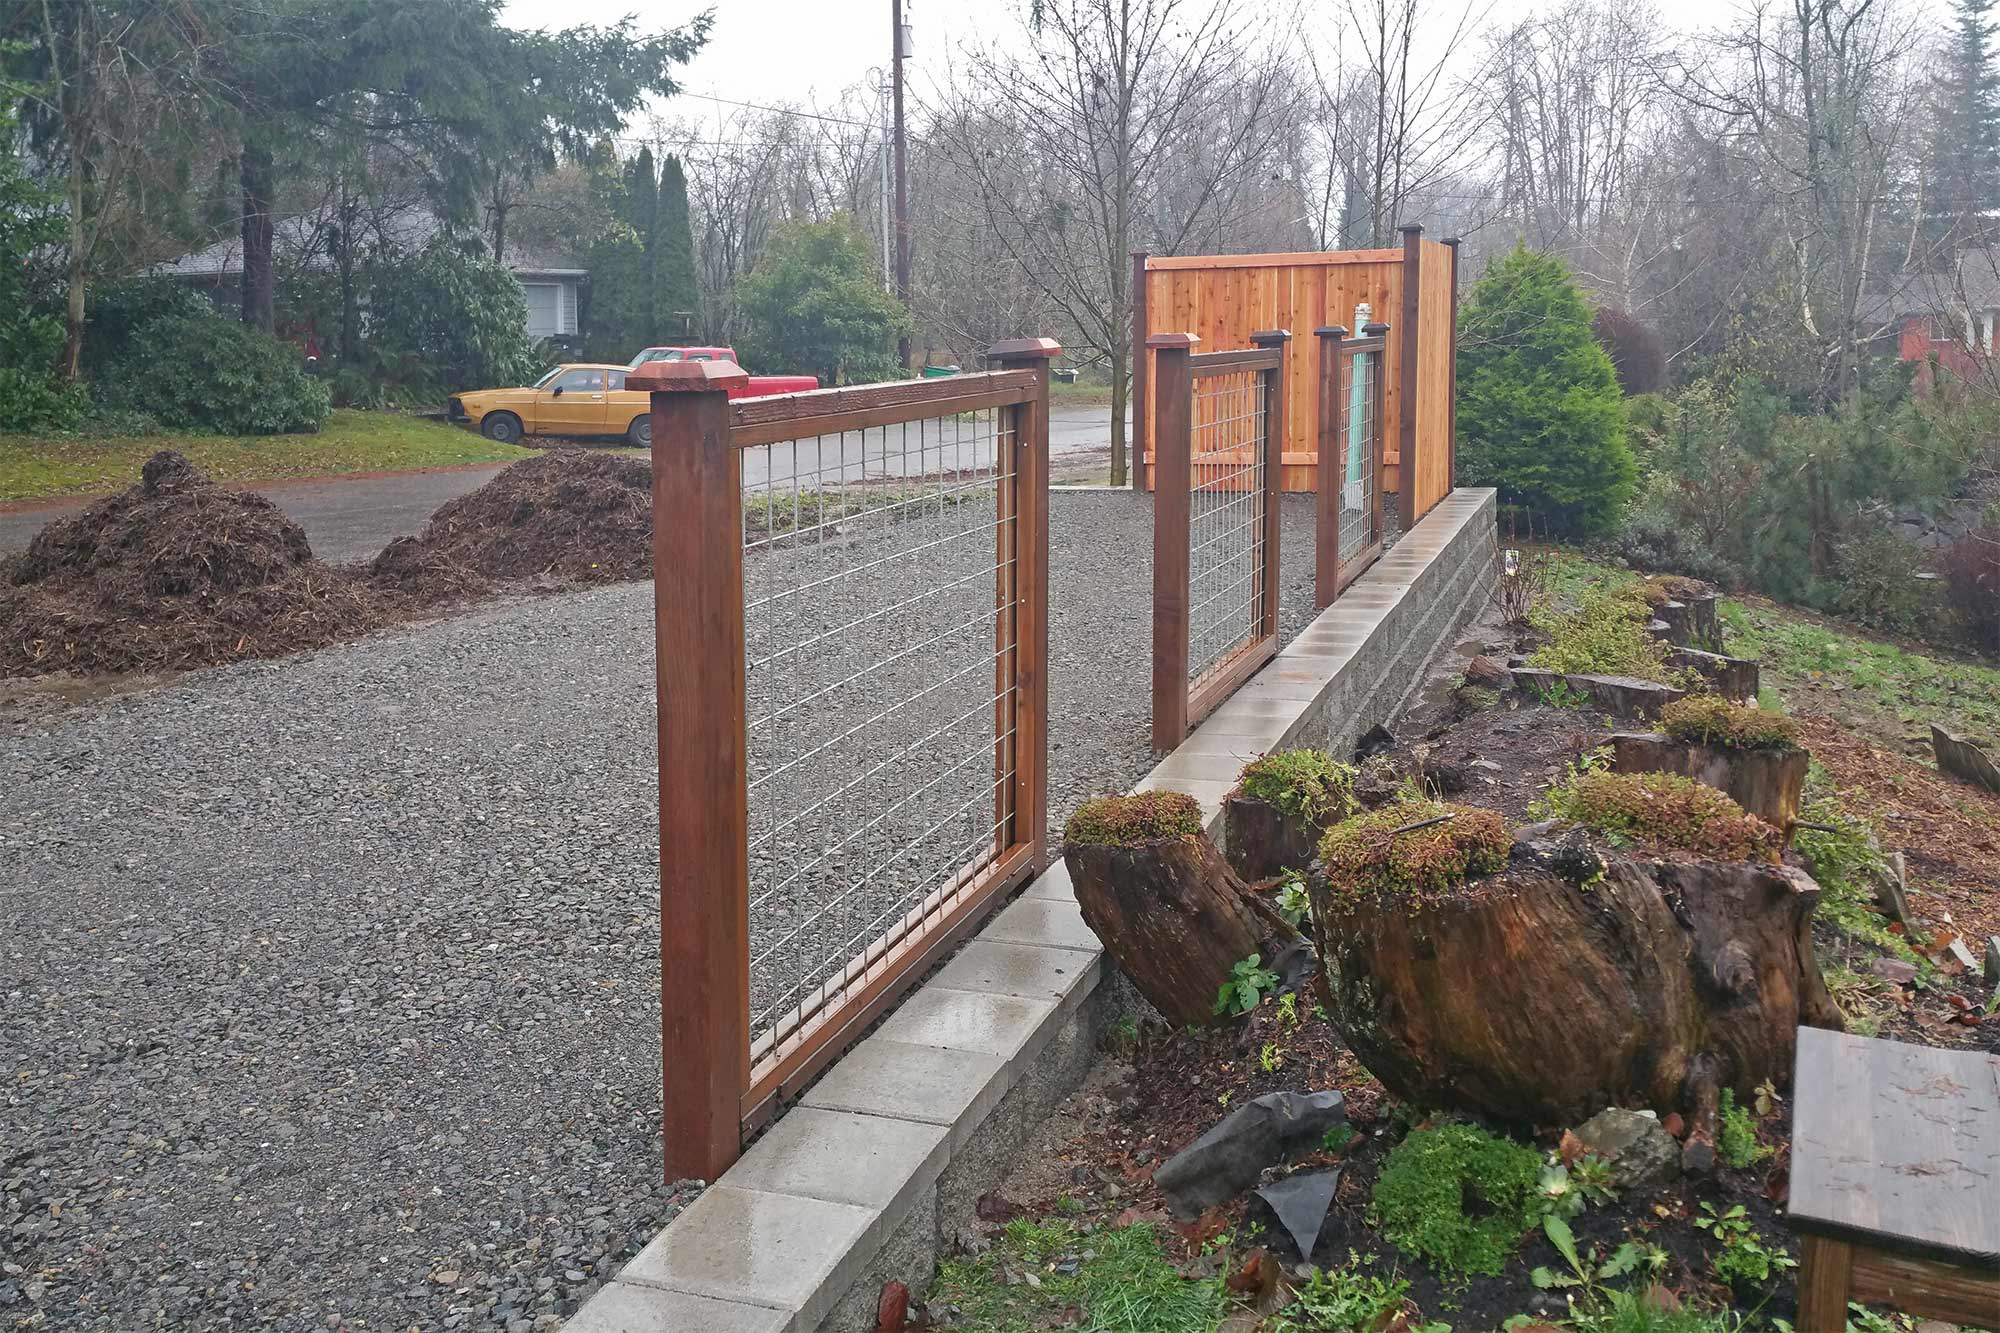 Raised Rv Parking With Hook Ups Ajb Landscaping Amp Fence